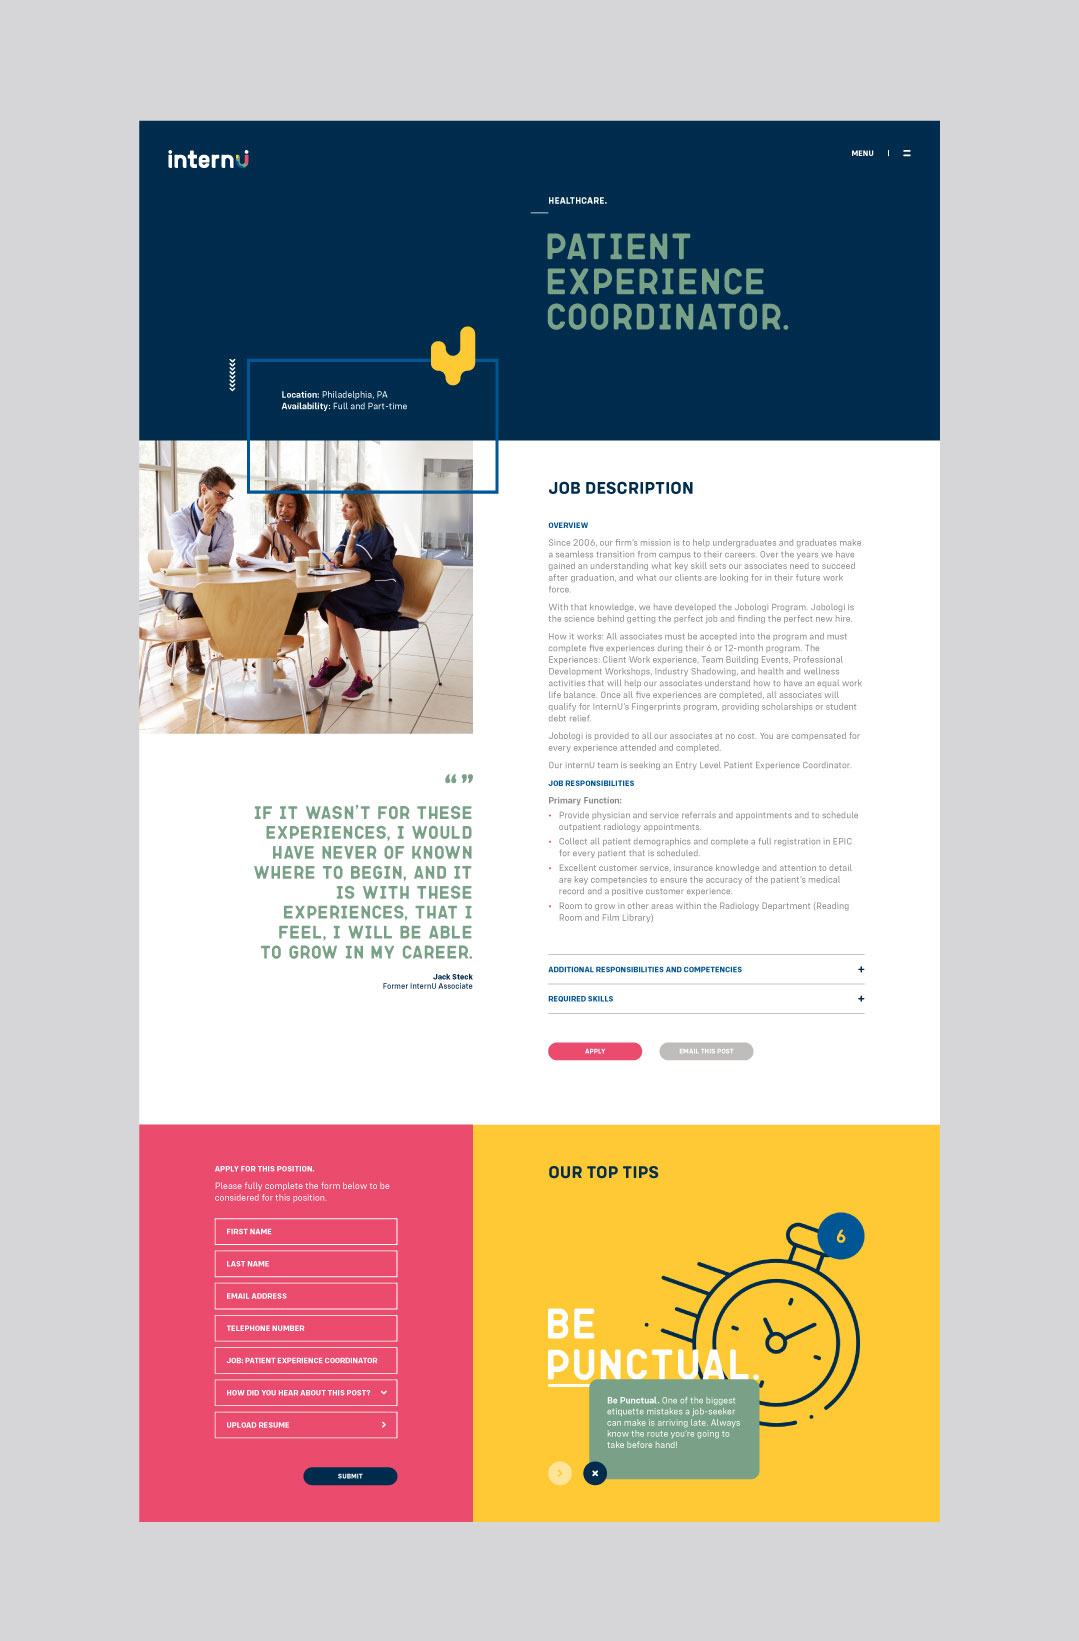 internU website showing the healthcare page design.